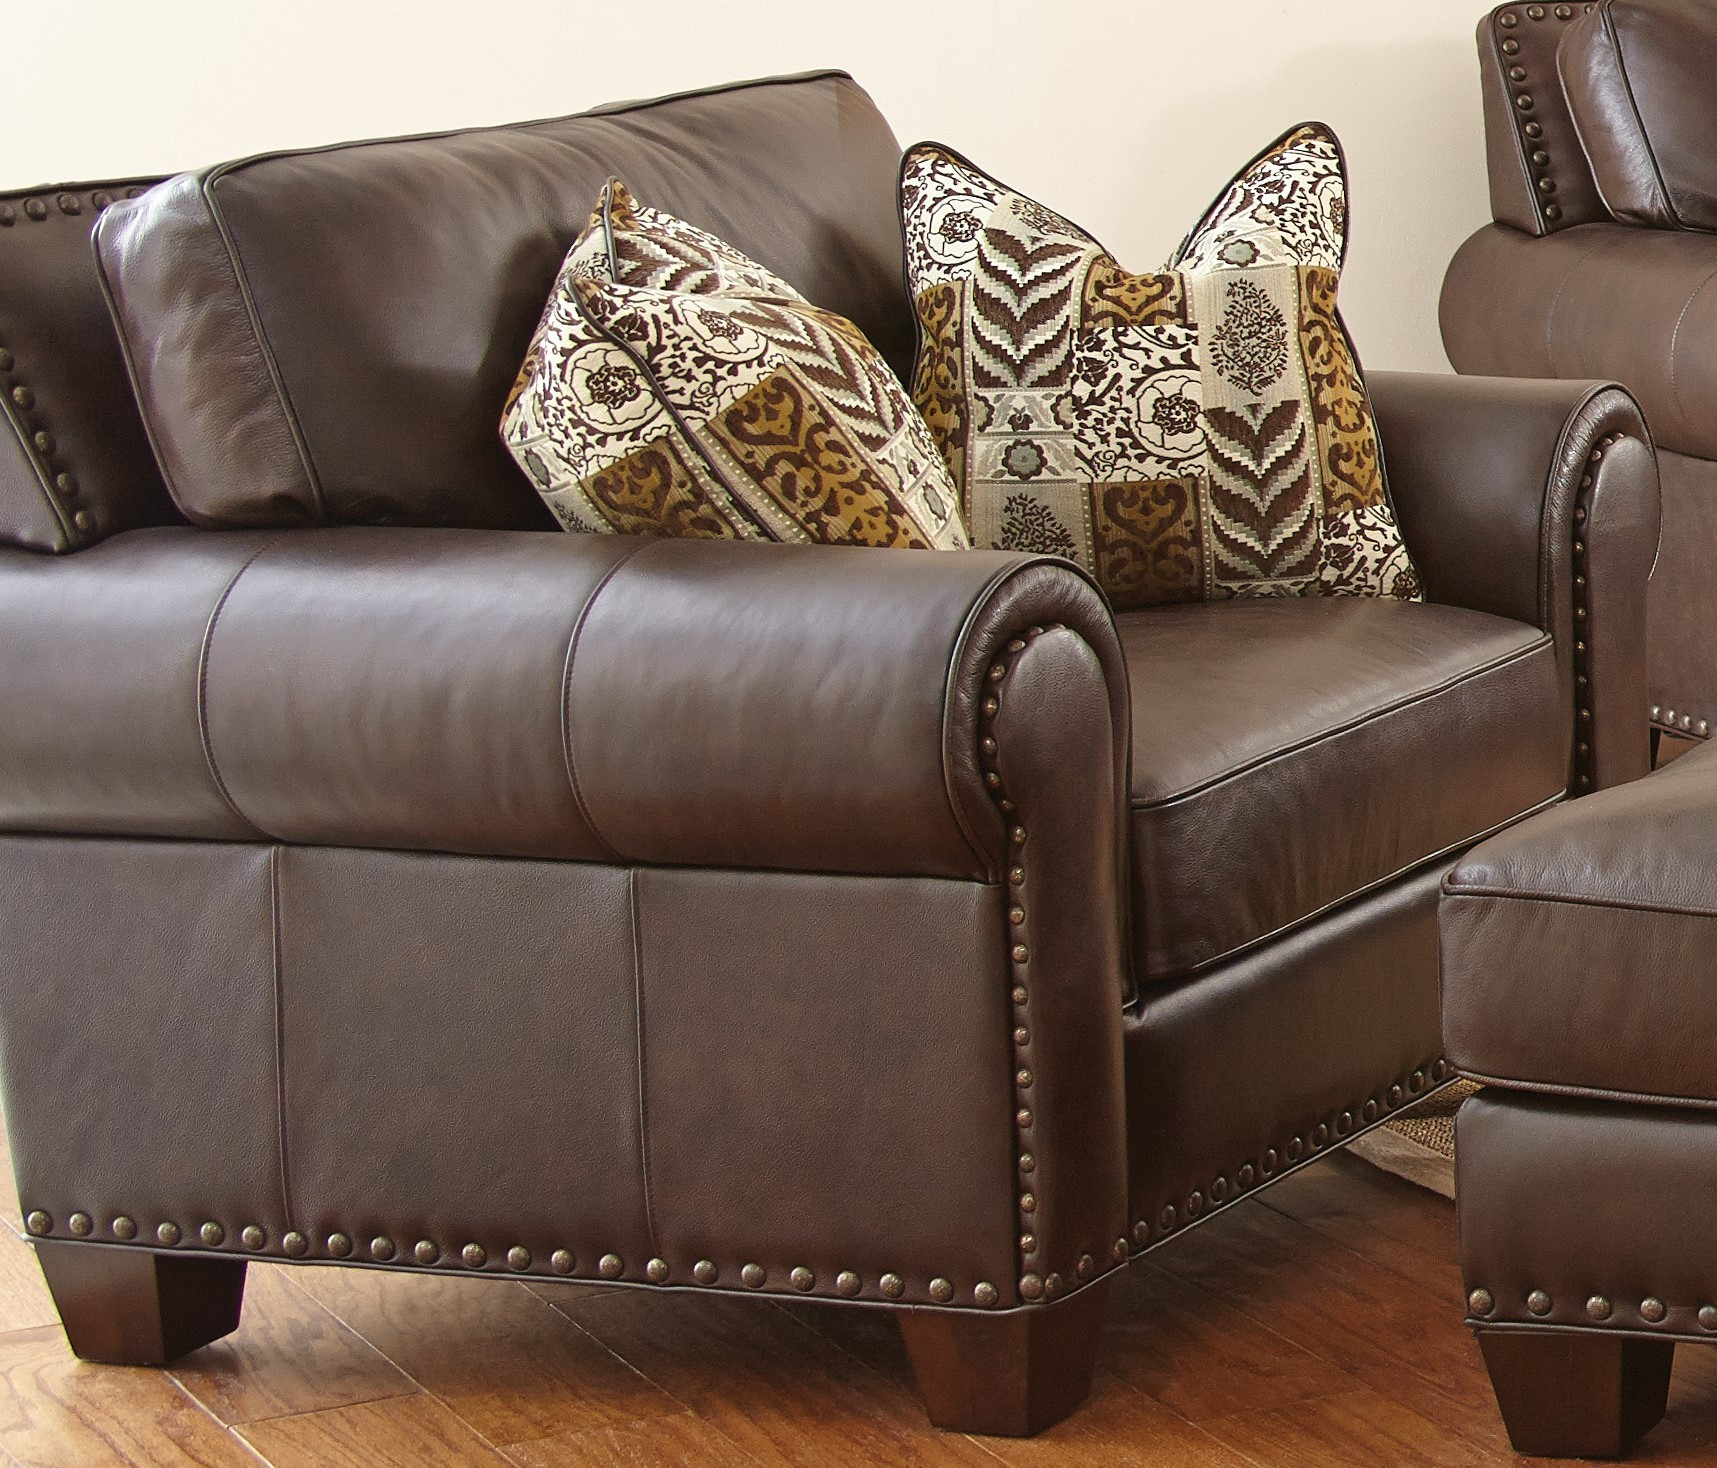 Escher Top Grain Leather Chair with 2 Accent Pillows from Steve Silver (SR810C) Coleman Furniture